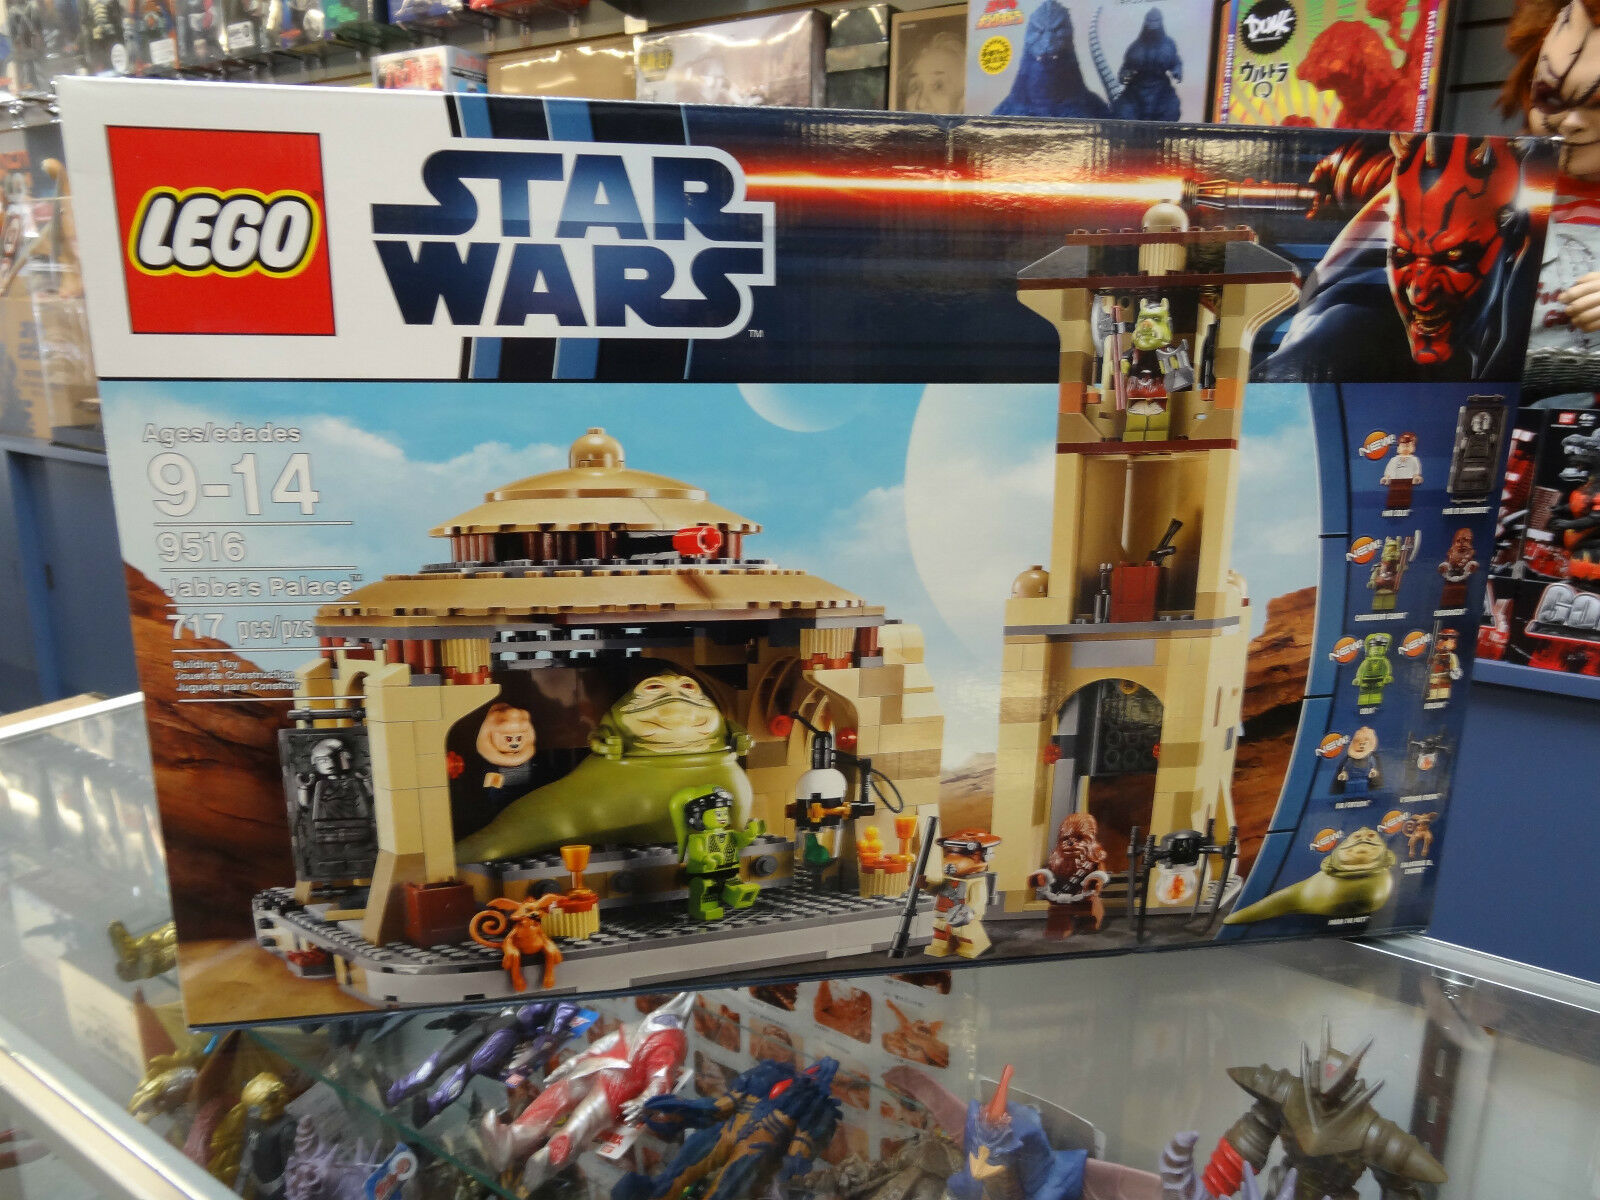 LEGO Star Wars 9516 Jabba's Palace New Seal In Box